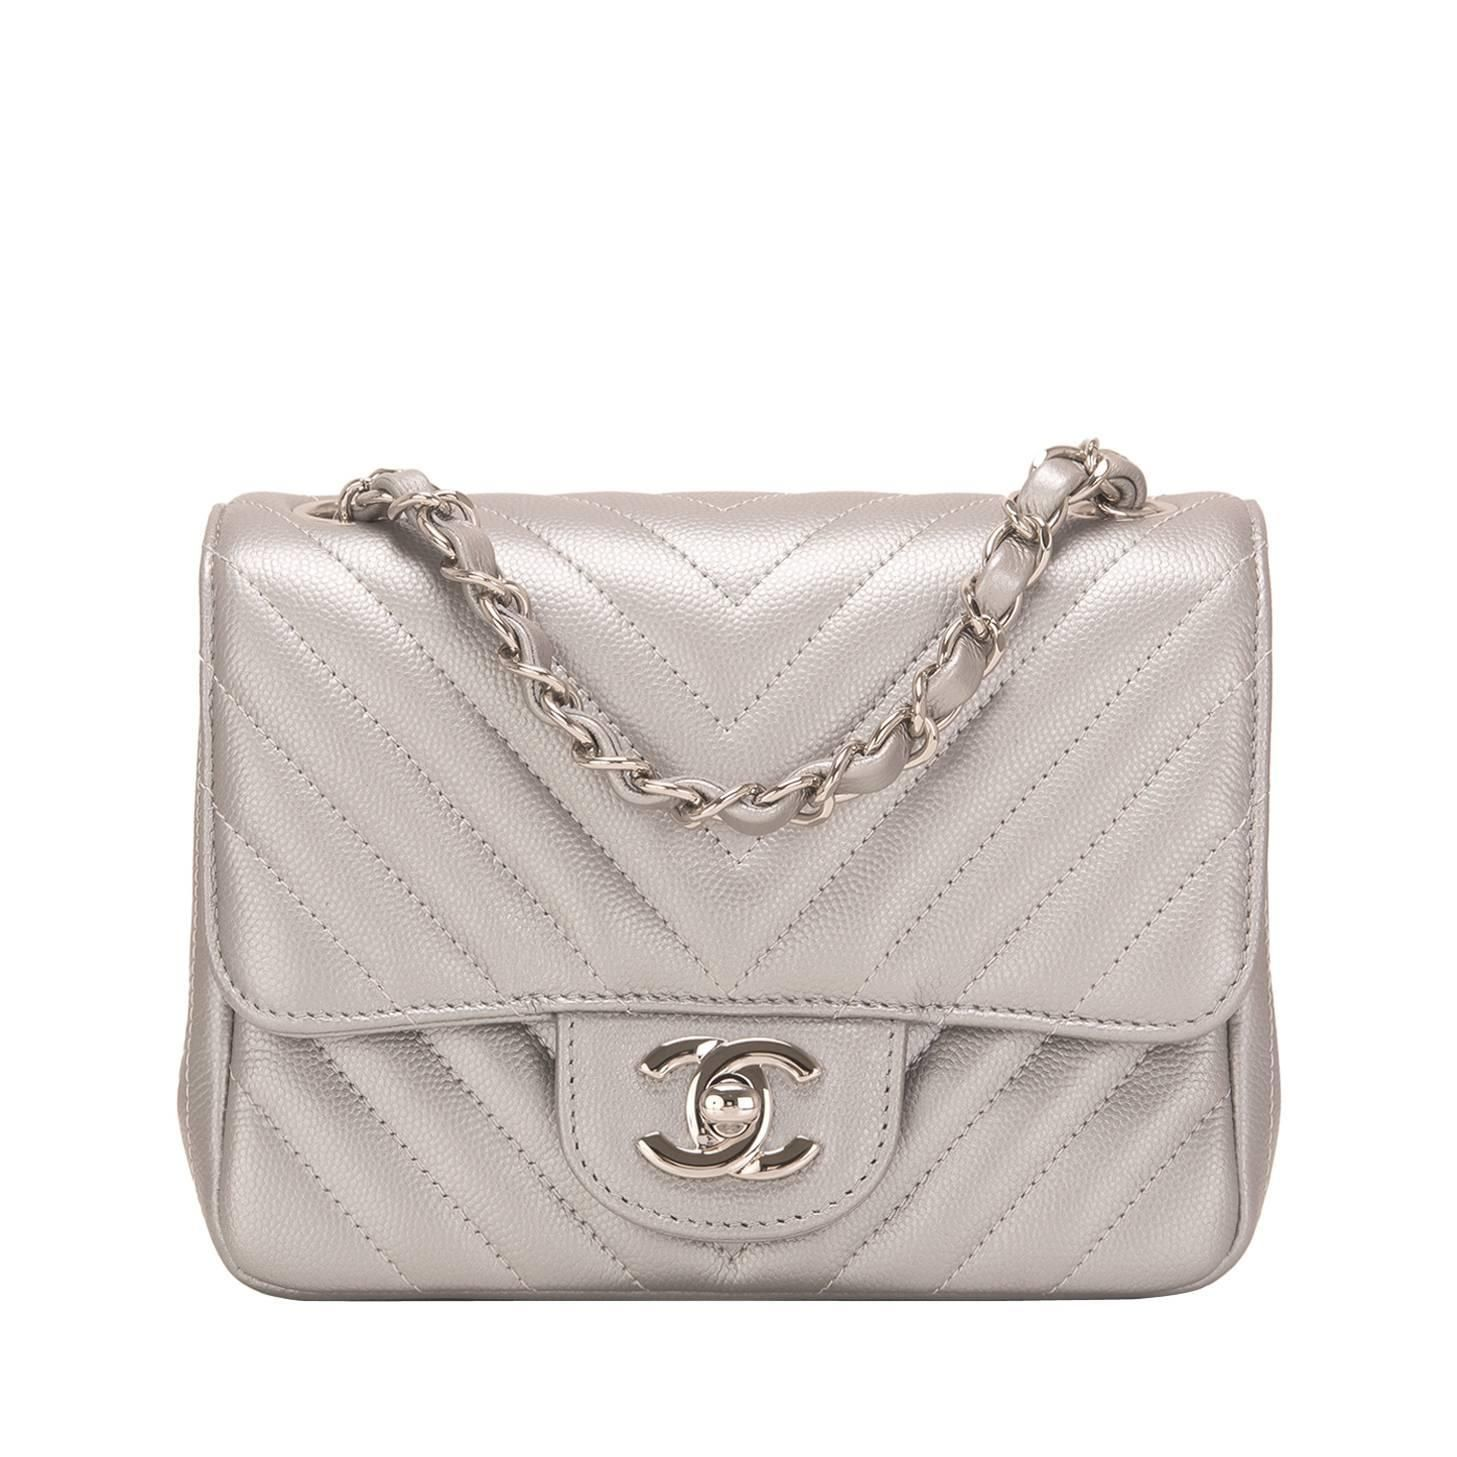 147a66f27289 Chanel Silver Chevron Quilted Caviar Square Mini Flap Bag in 2019 ...